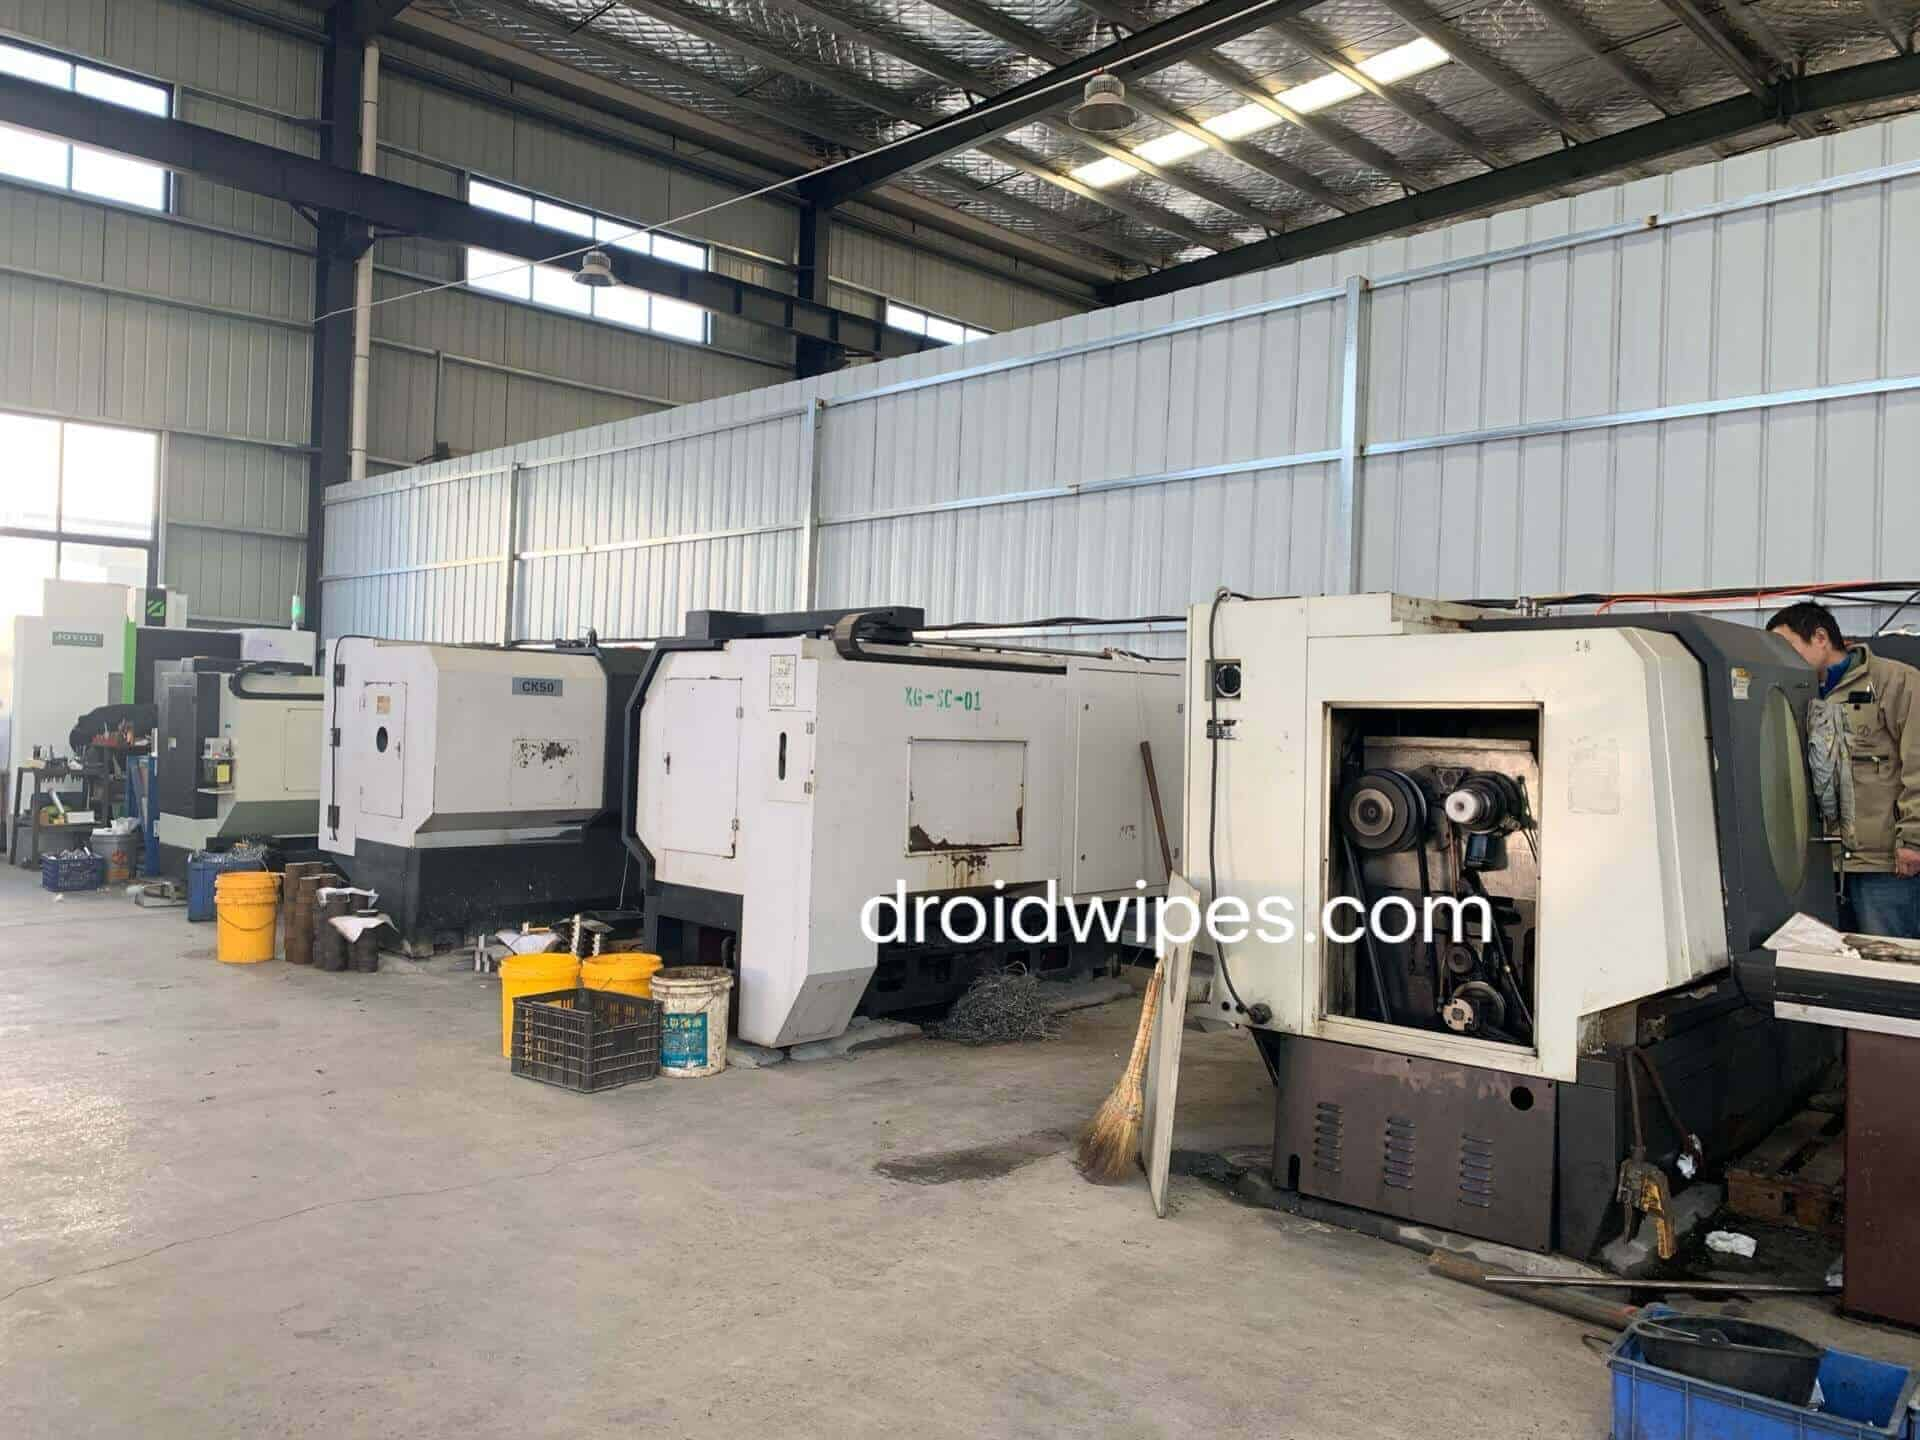 Droid Group wet wipes machine manufacturer - ABOUT US